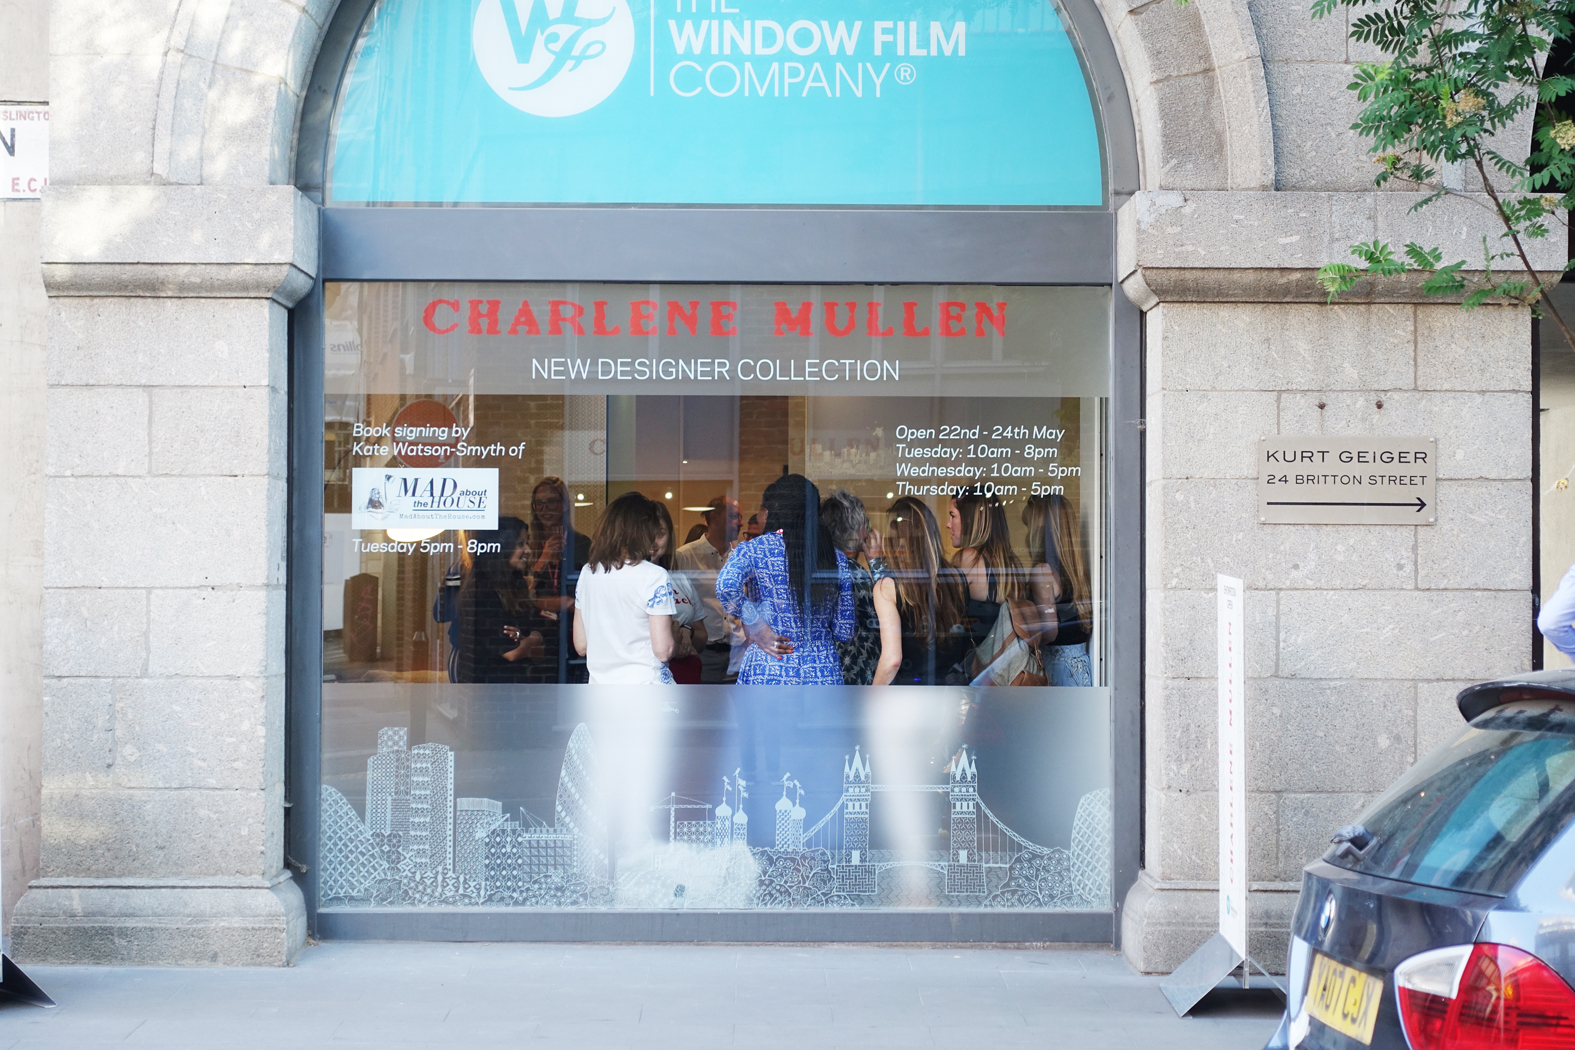 The Window Film Company and Charlene Mullen launch event at Clerkenwell Design Week